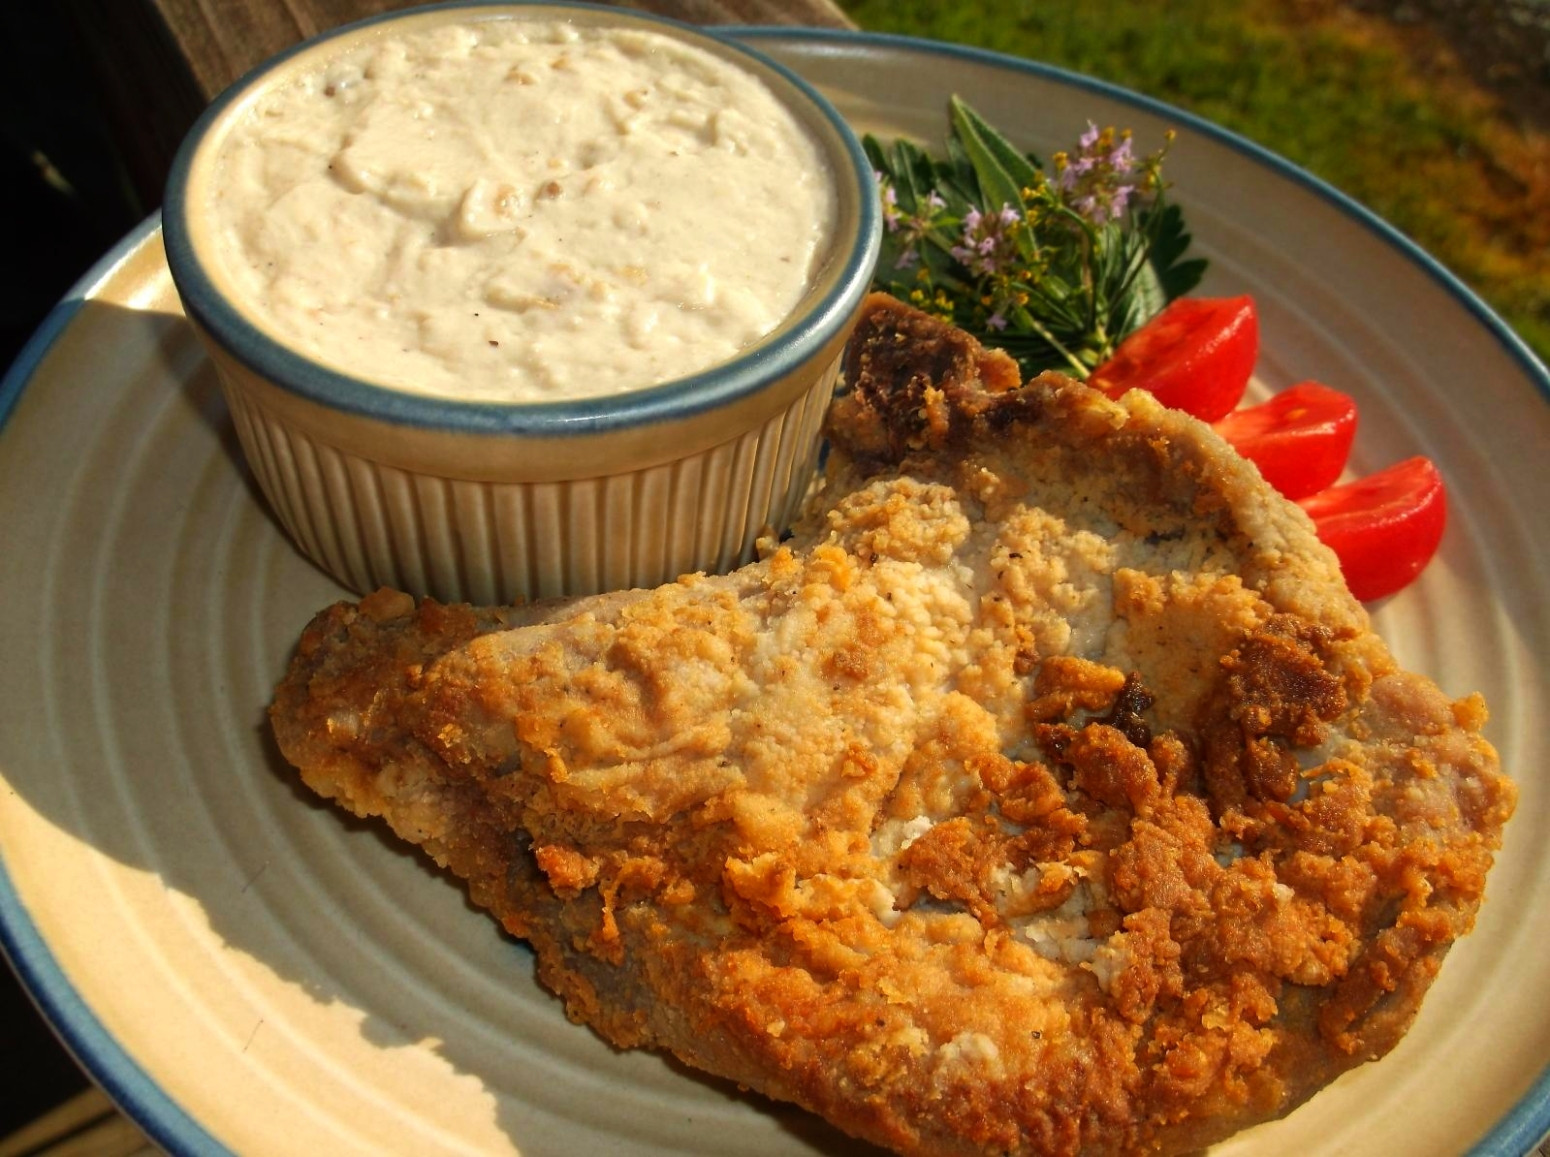 Country Fried Pork Chops  COUNTRY FRIED PORK CHOPS WITH CREAMY MILK GRAVY Recipe